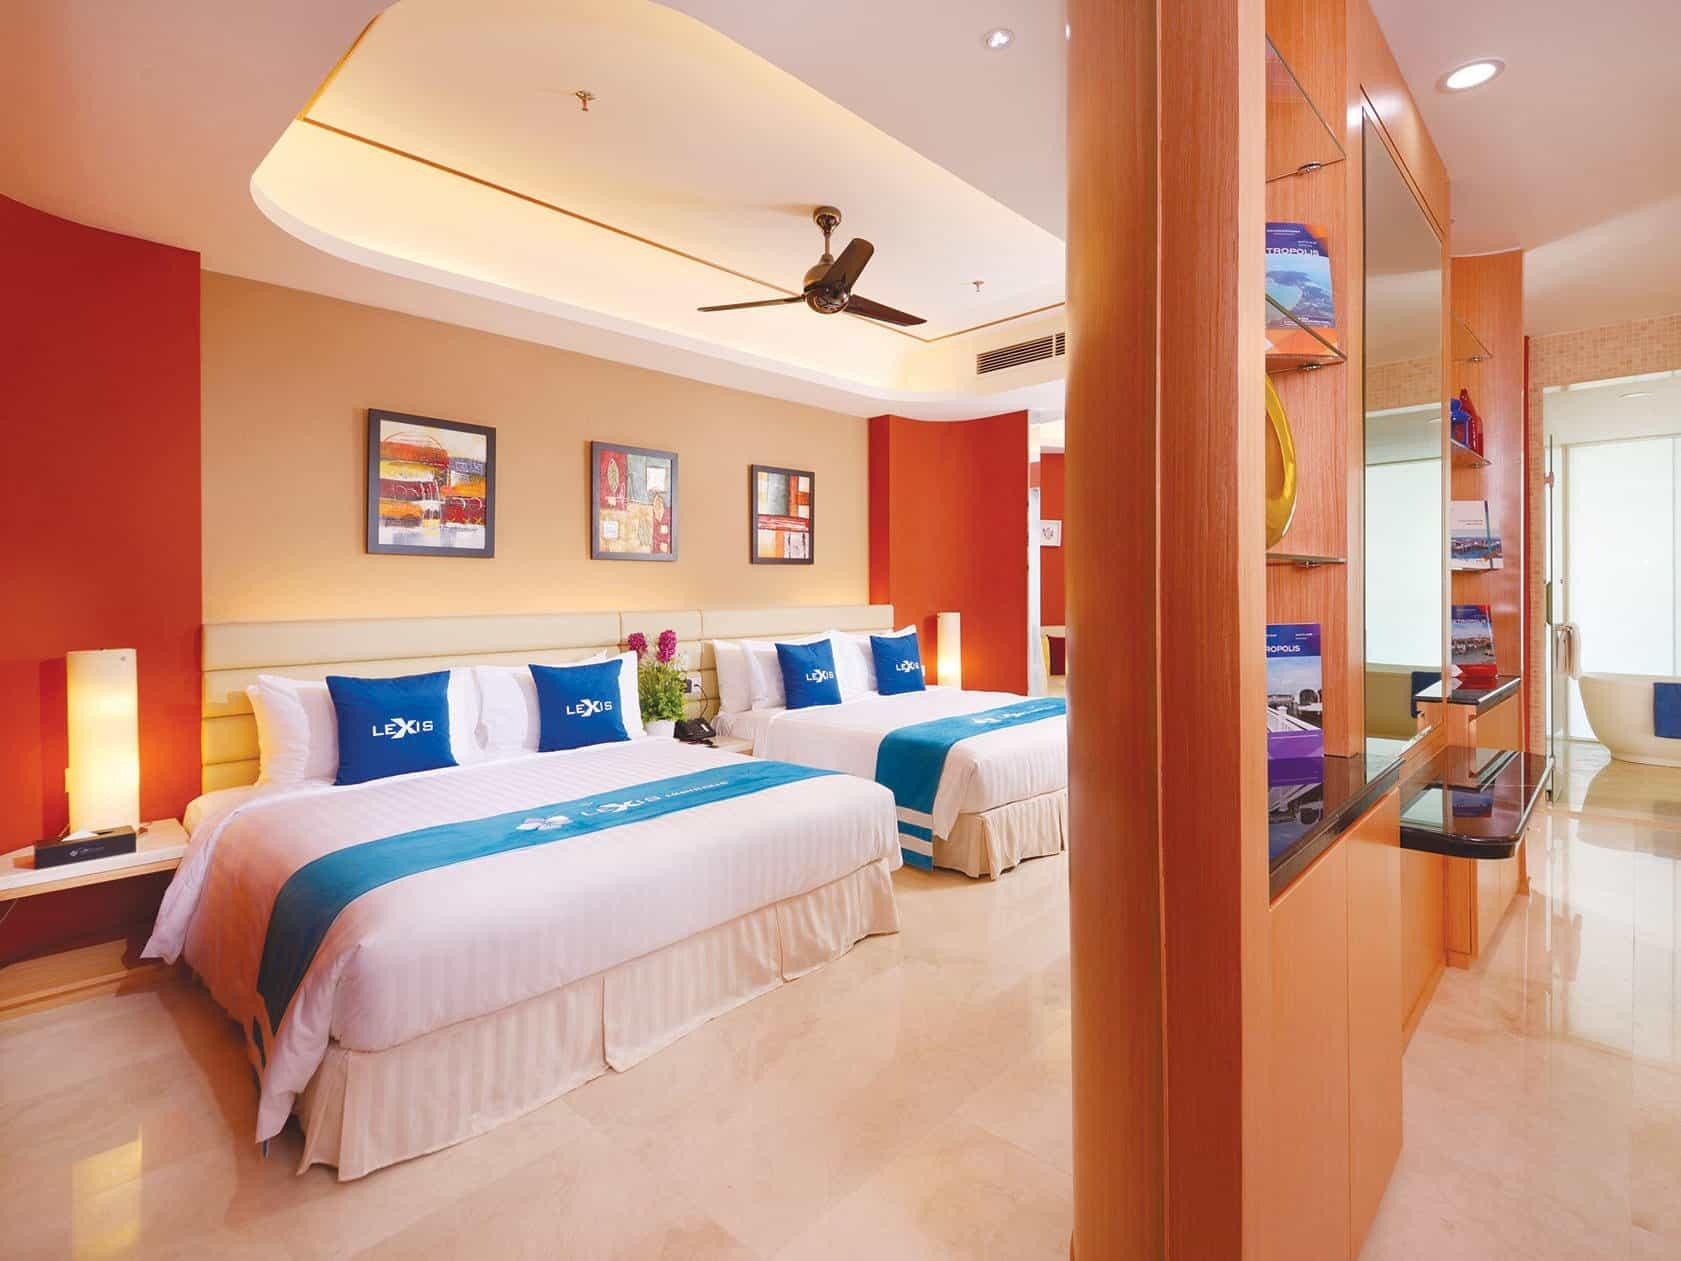 Sky Pool Villa bedroom with 2 king size beds - Lexis Hibiscus® Port Dickson